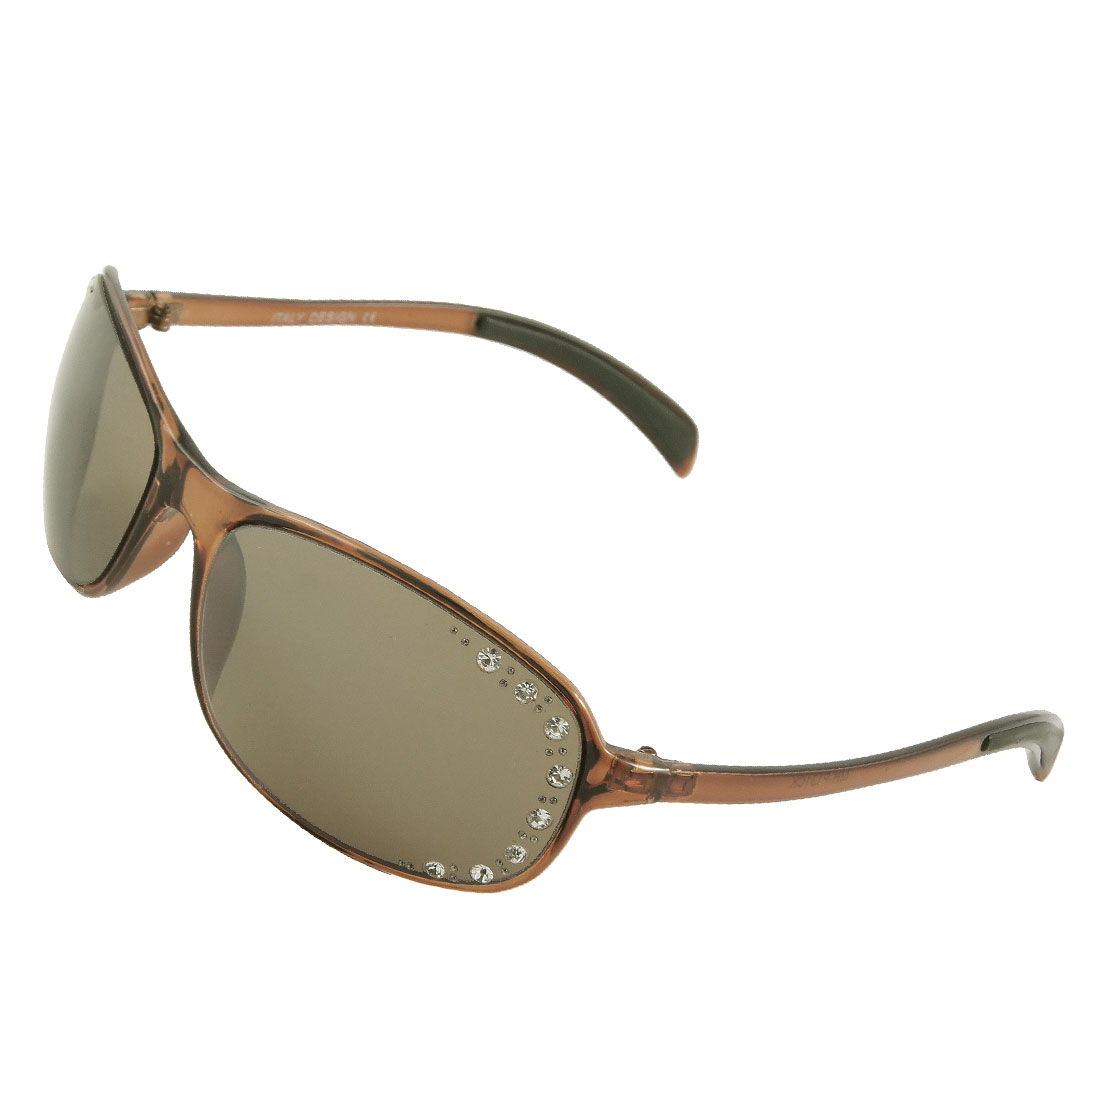 Lady Dark Brown Plastic Full Frame Eyewear Sunglasses